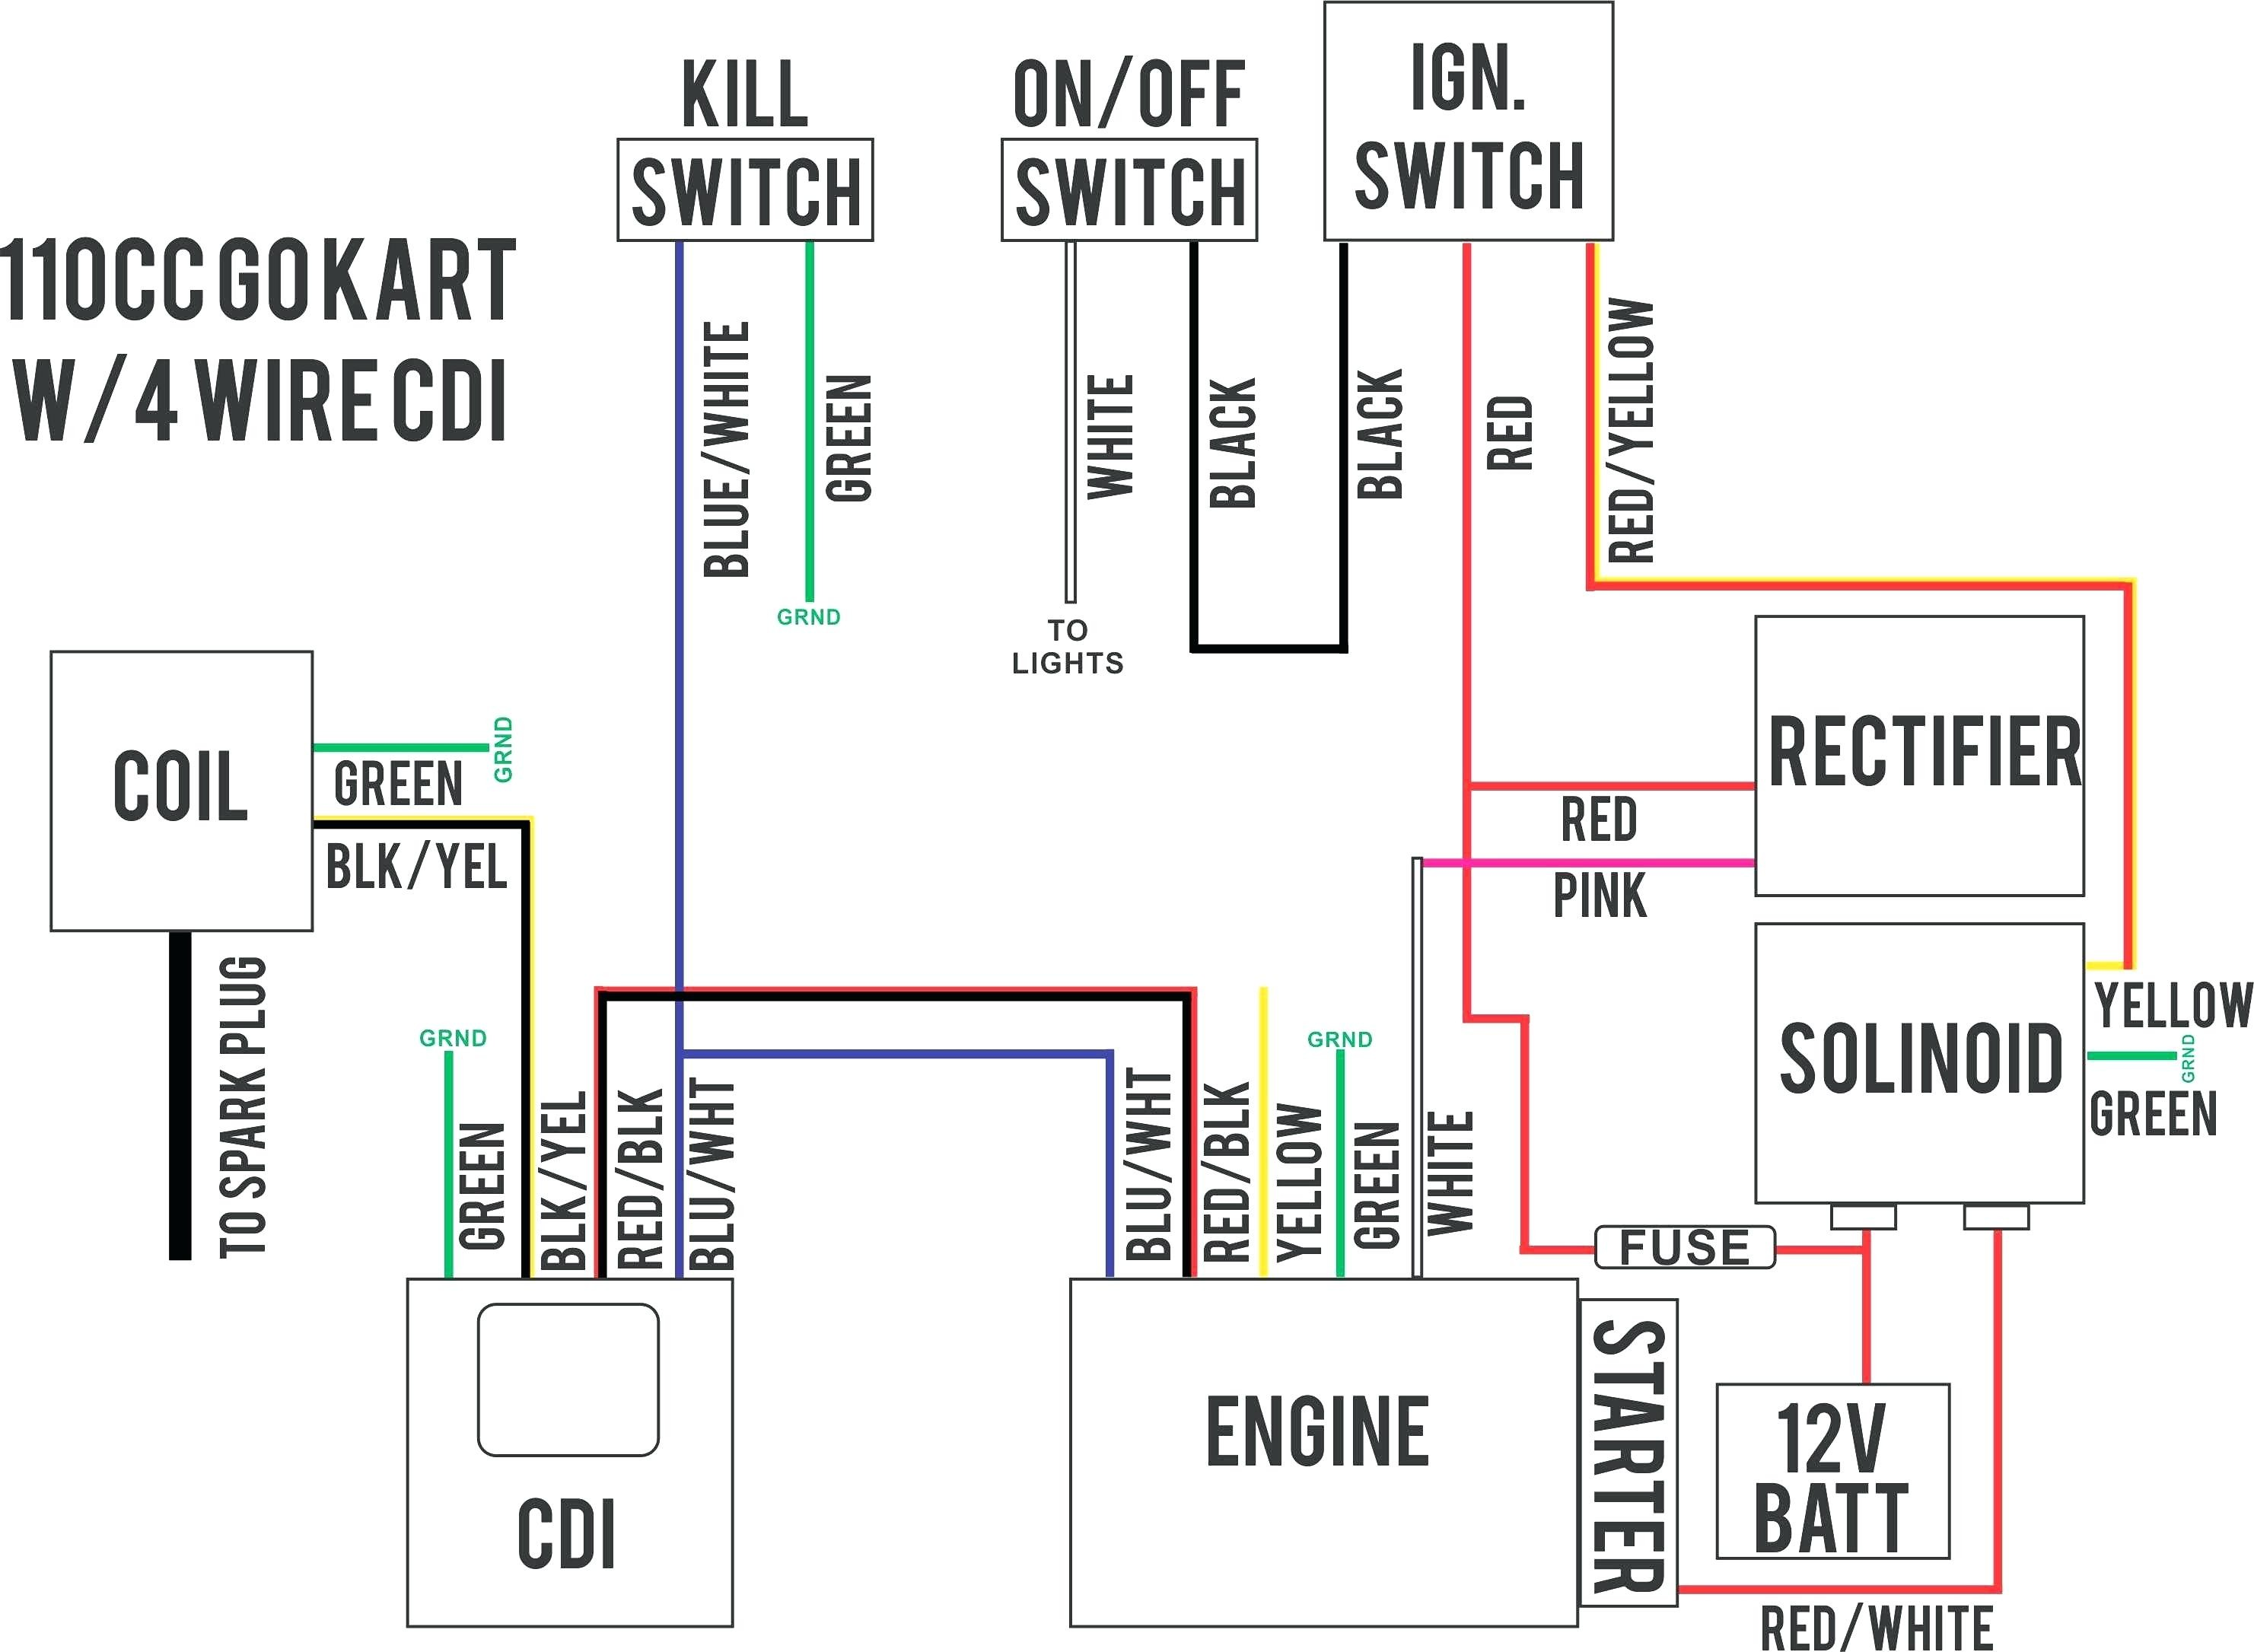 cat 5 wiring diagram tv wiring diagrams rh silviaardila co Simple Car Wiring Diagram Electrical Wiring Diagrams for Cars